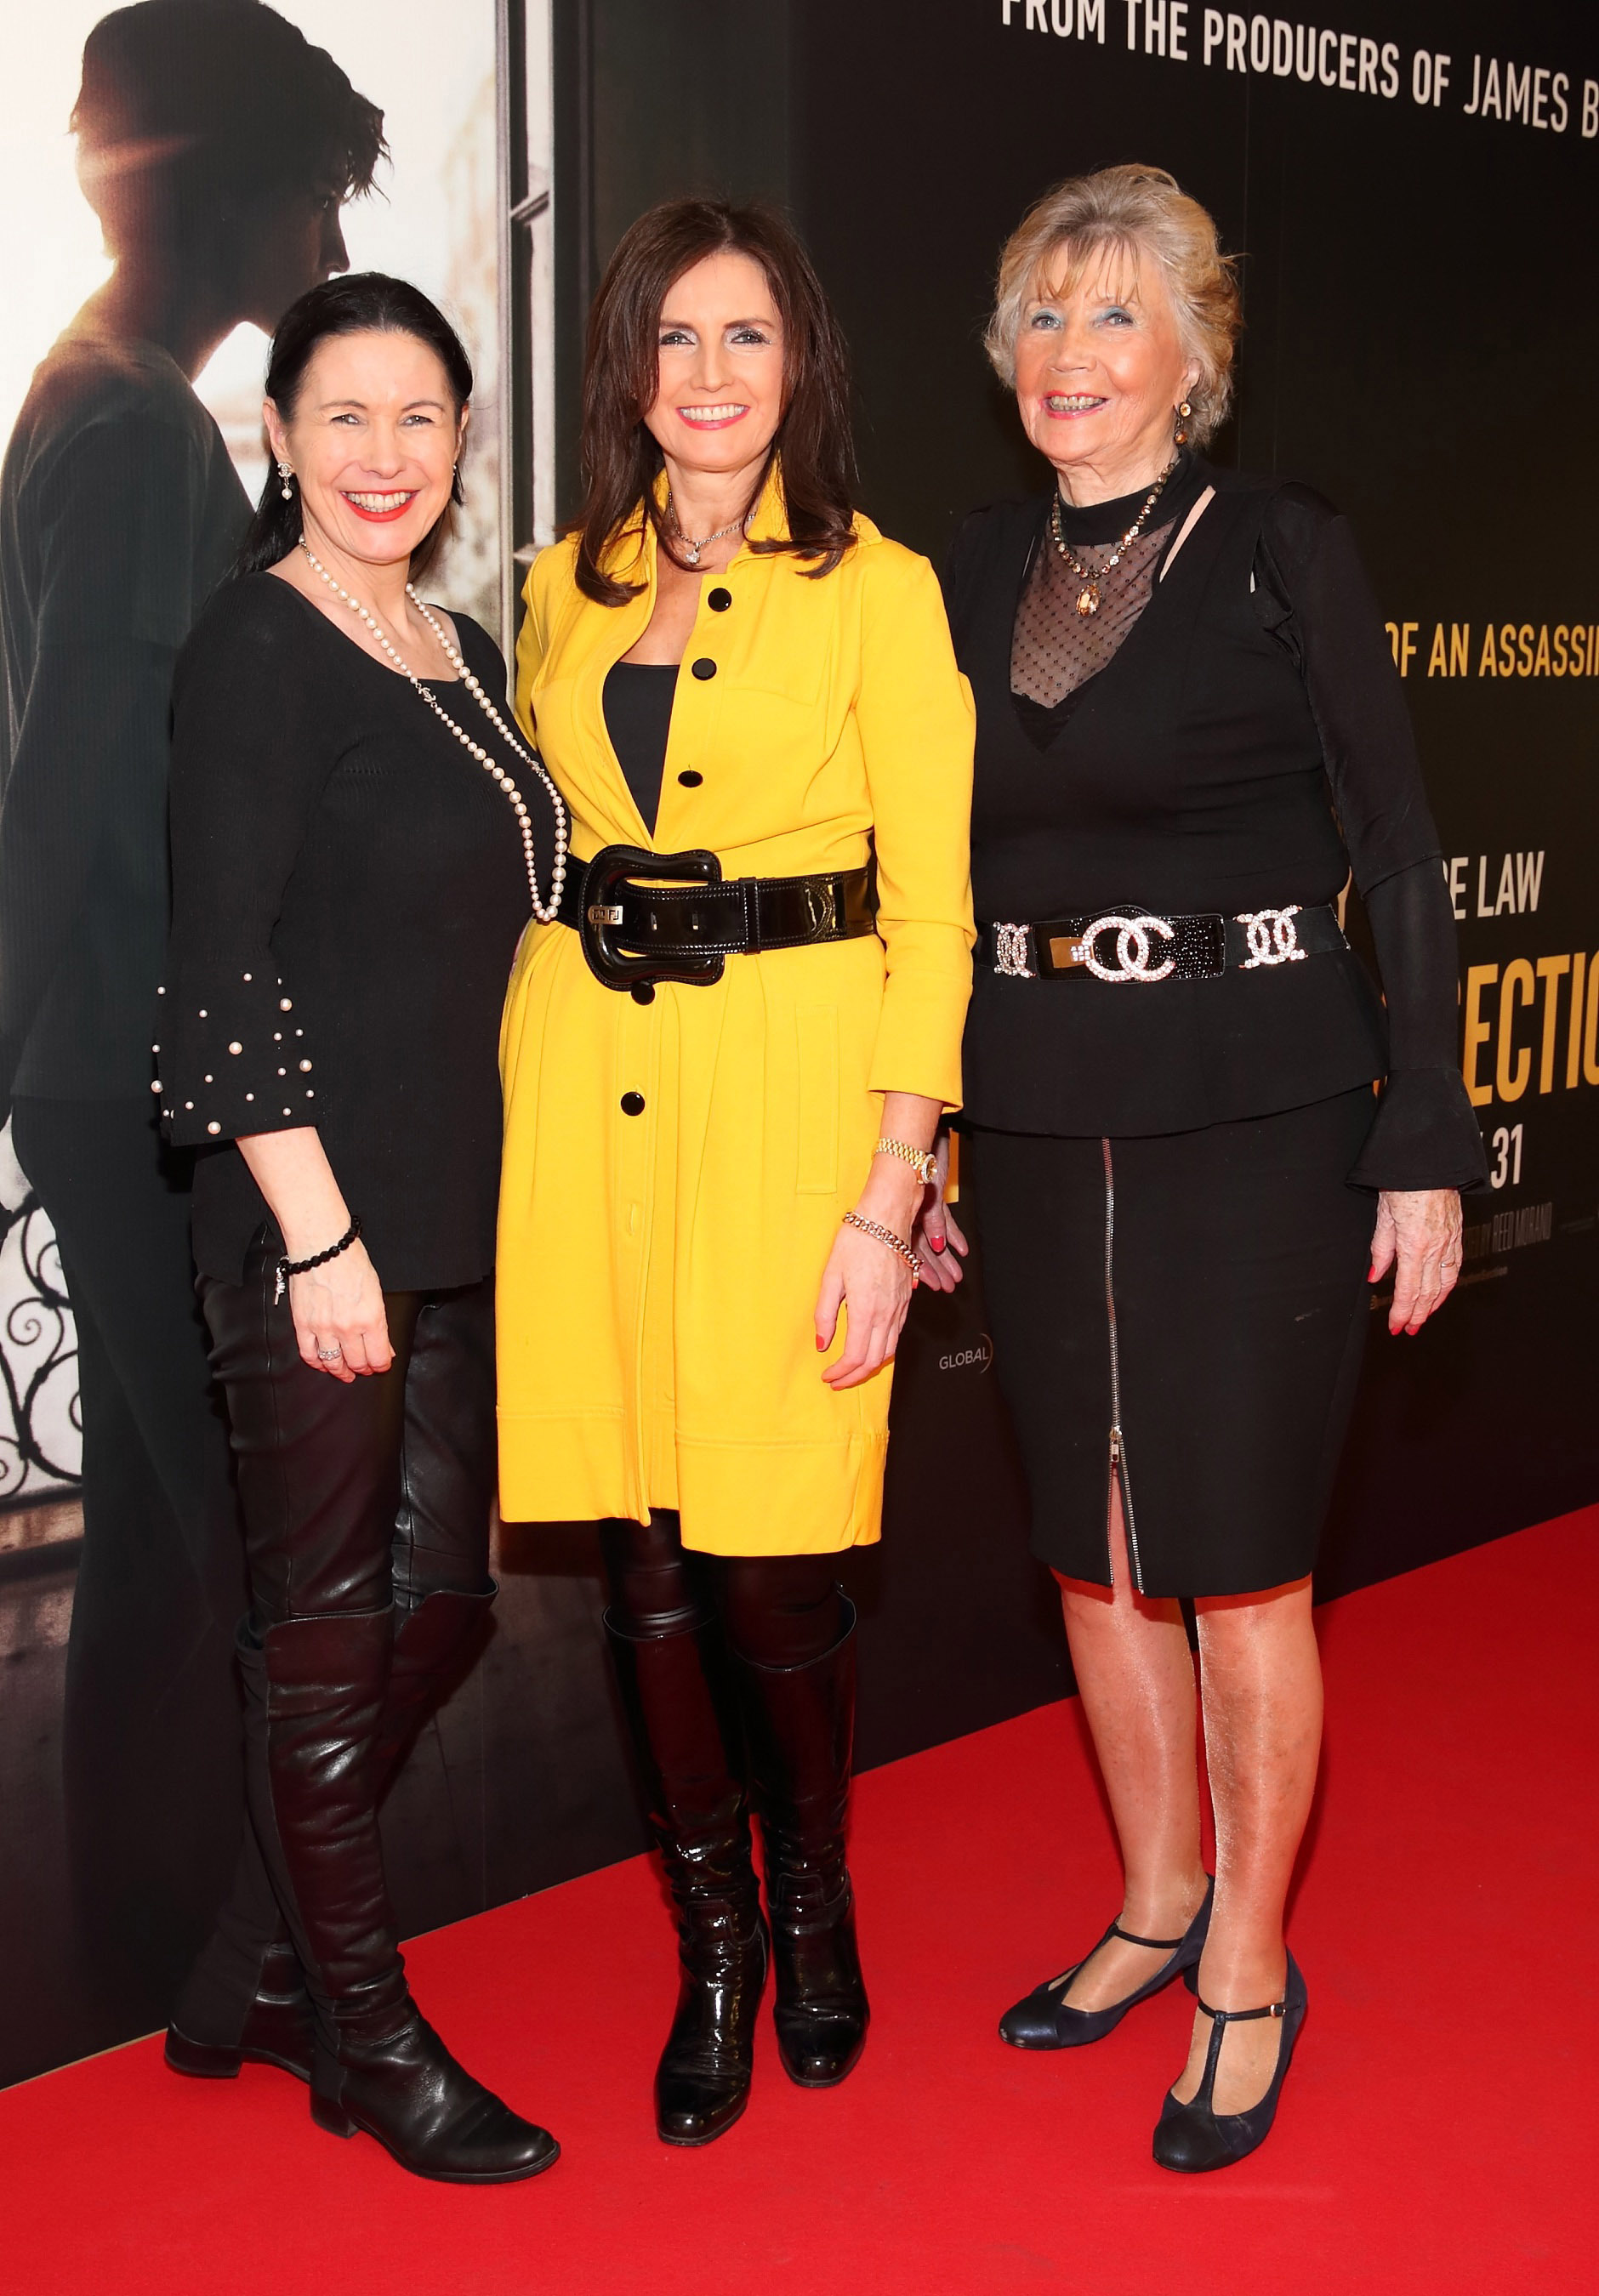 Suzy Bruton, Caroline O'Connell and Carmel O'Connell  pictured at the special preview screening of The Rhythm Section at the Light House Cinema, Dublin. Pic: Brian McEvoy Photography